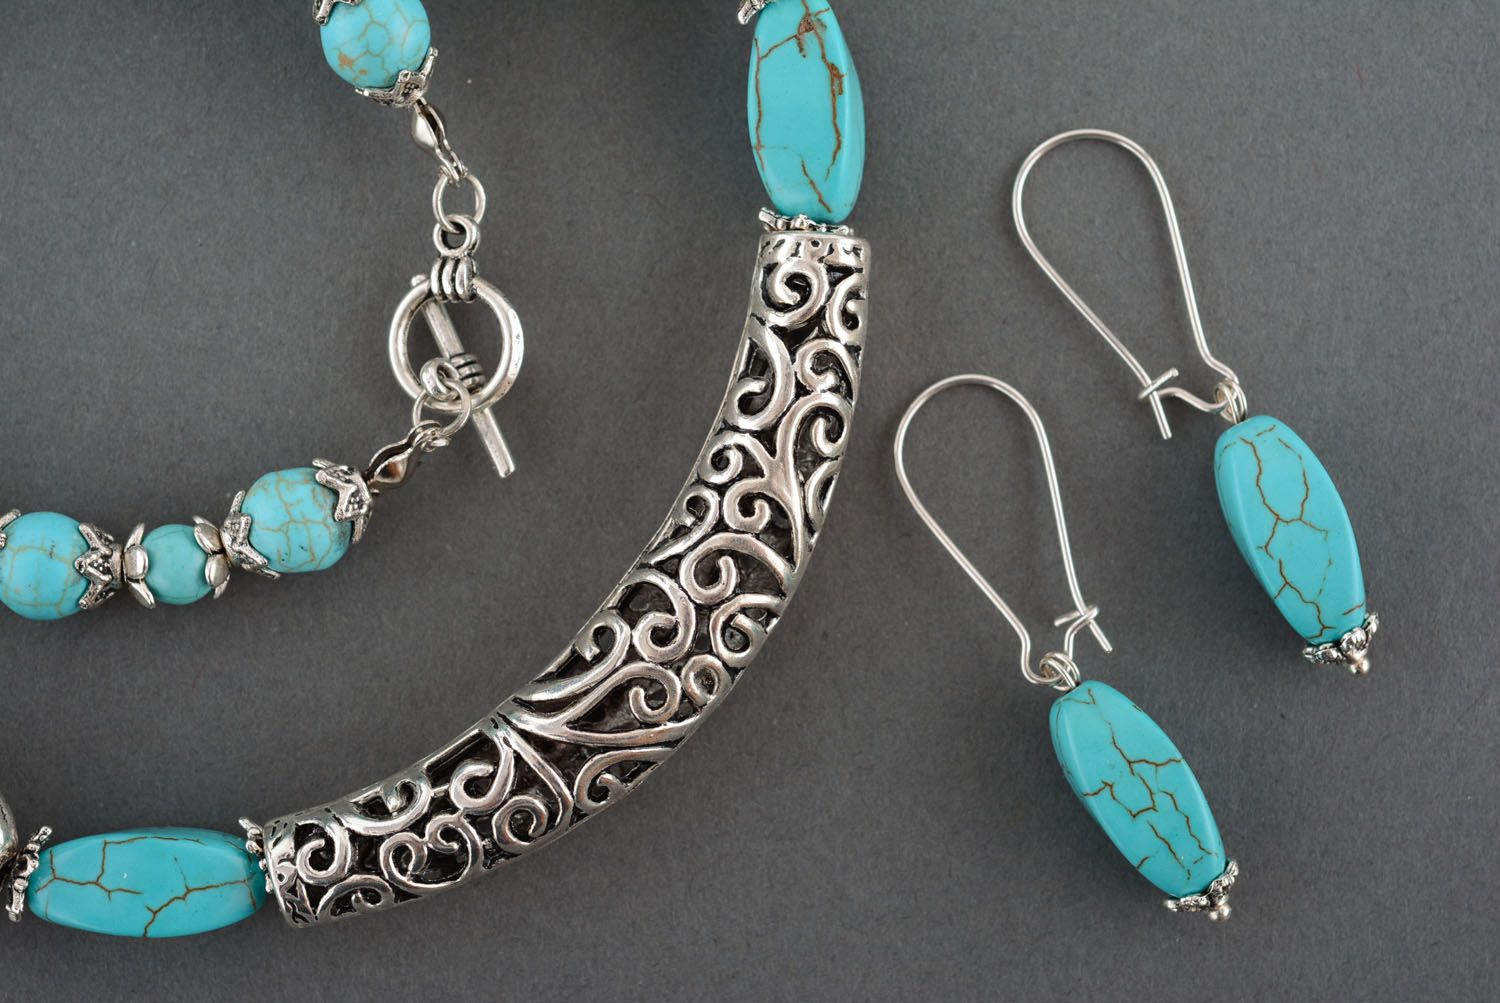 Necklace and earrings made of turquoise photo 3